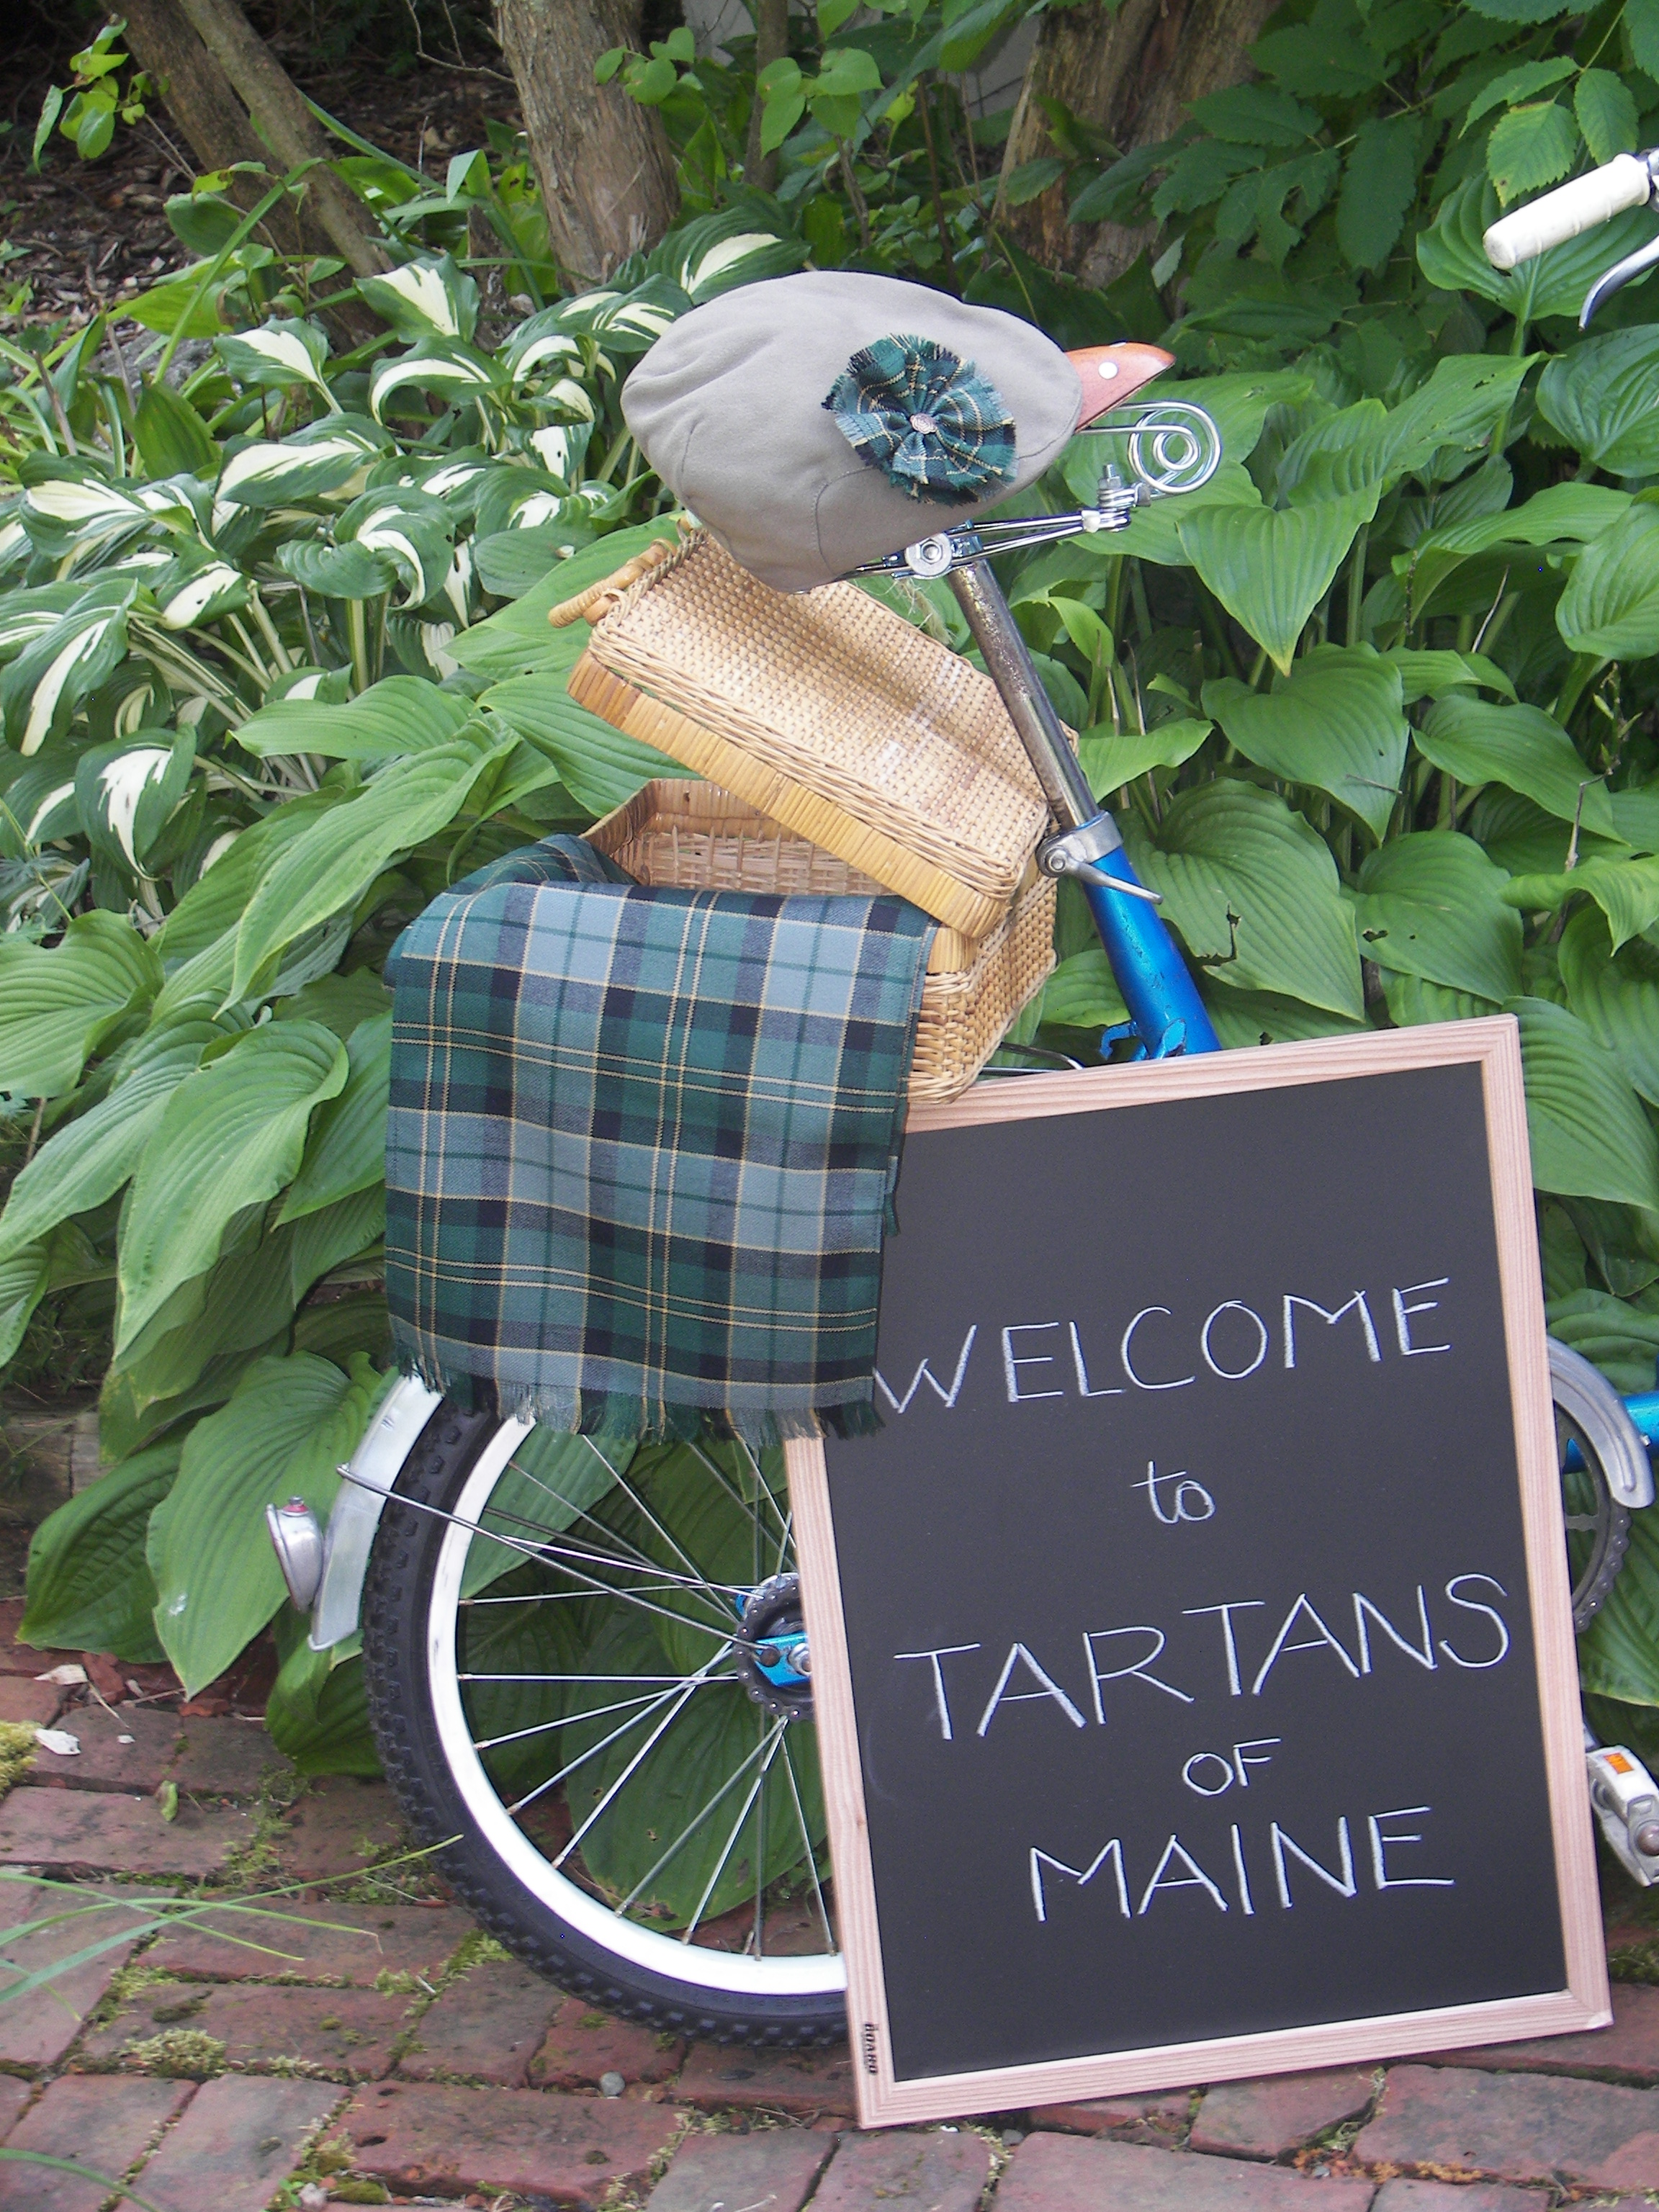 322a789a39ee46 Tartans of Maine Home - Tartans of Maine